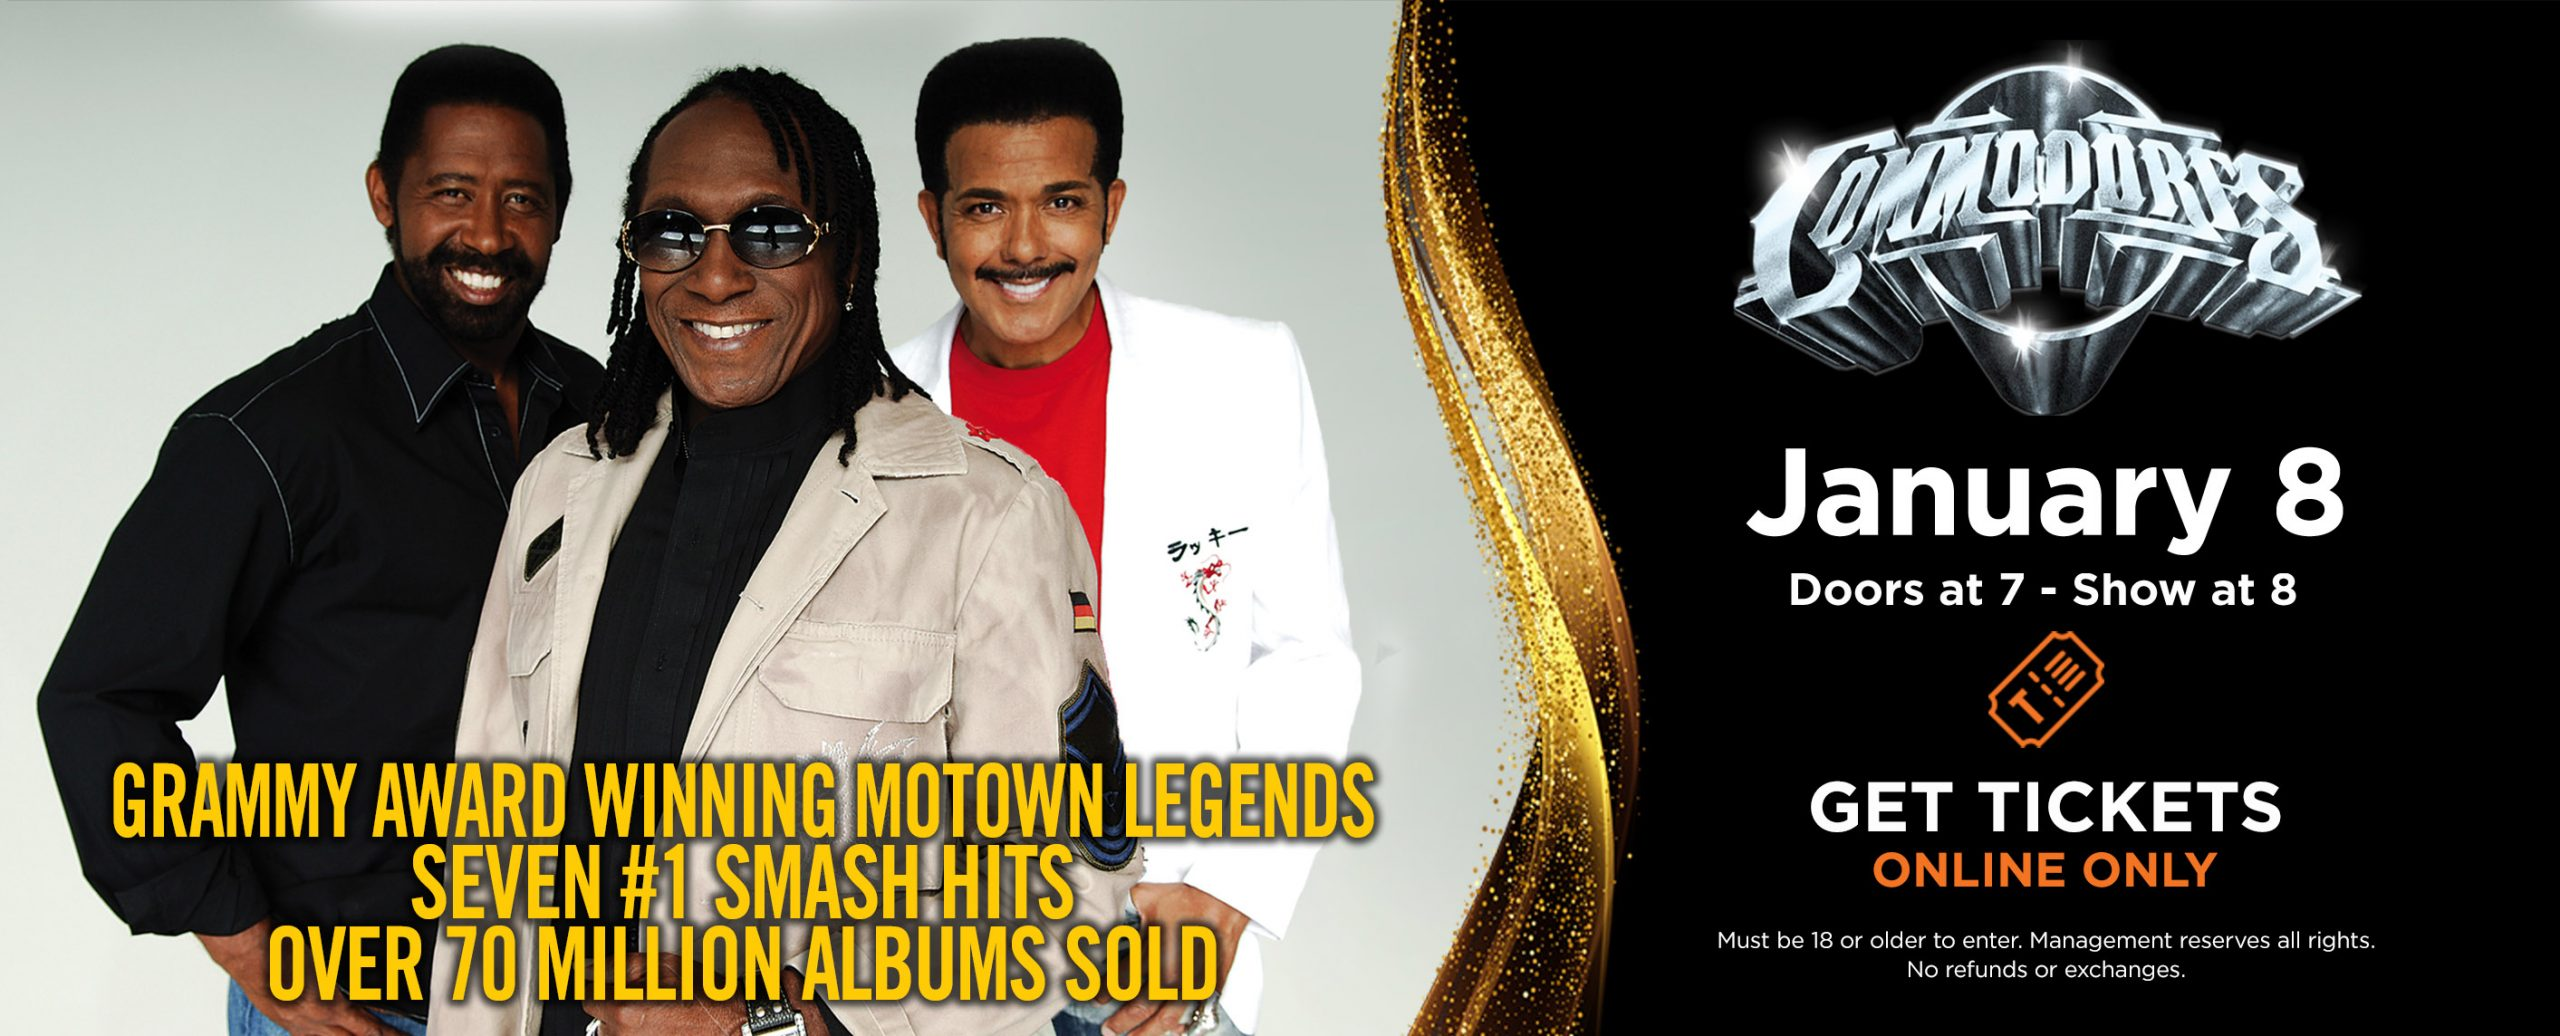 Commodores - Jan 8, 2022 | Doors open 7pm, Show starts 8pm